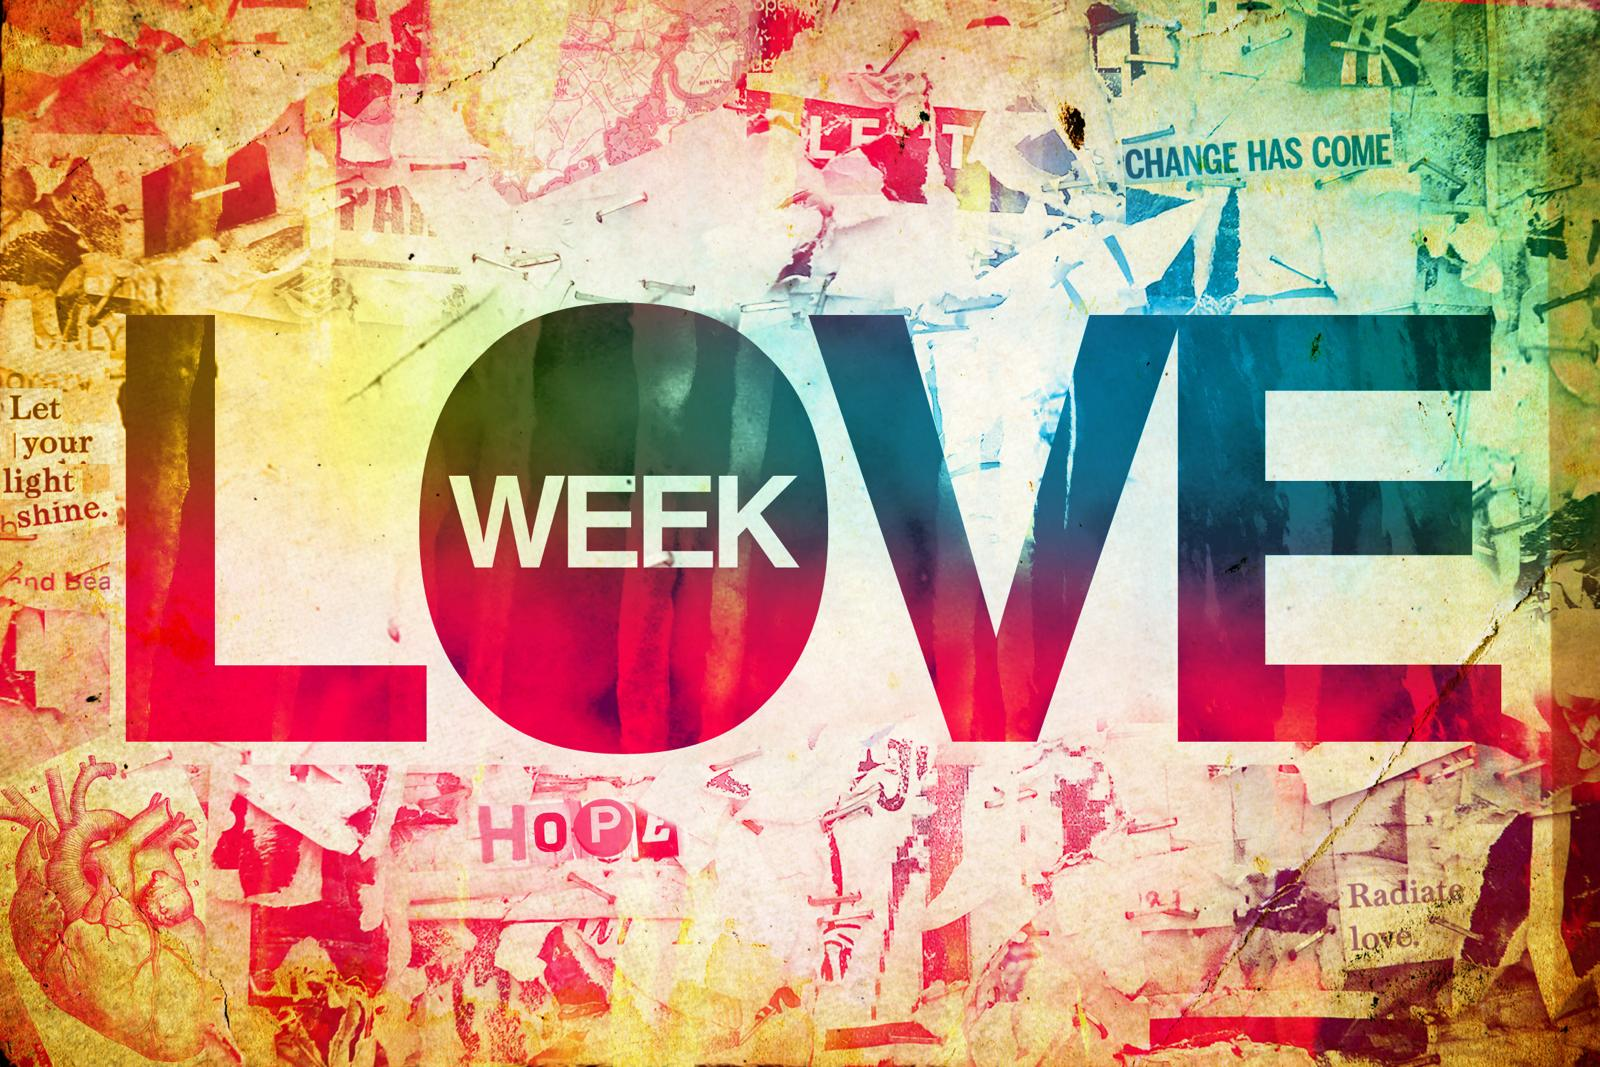 https://0201.nccdn.net/1_2/000/000/151/8c4/Love-Week-Banner.jpeg